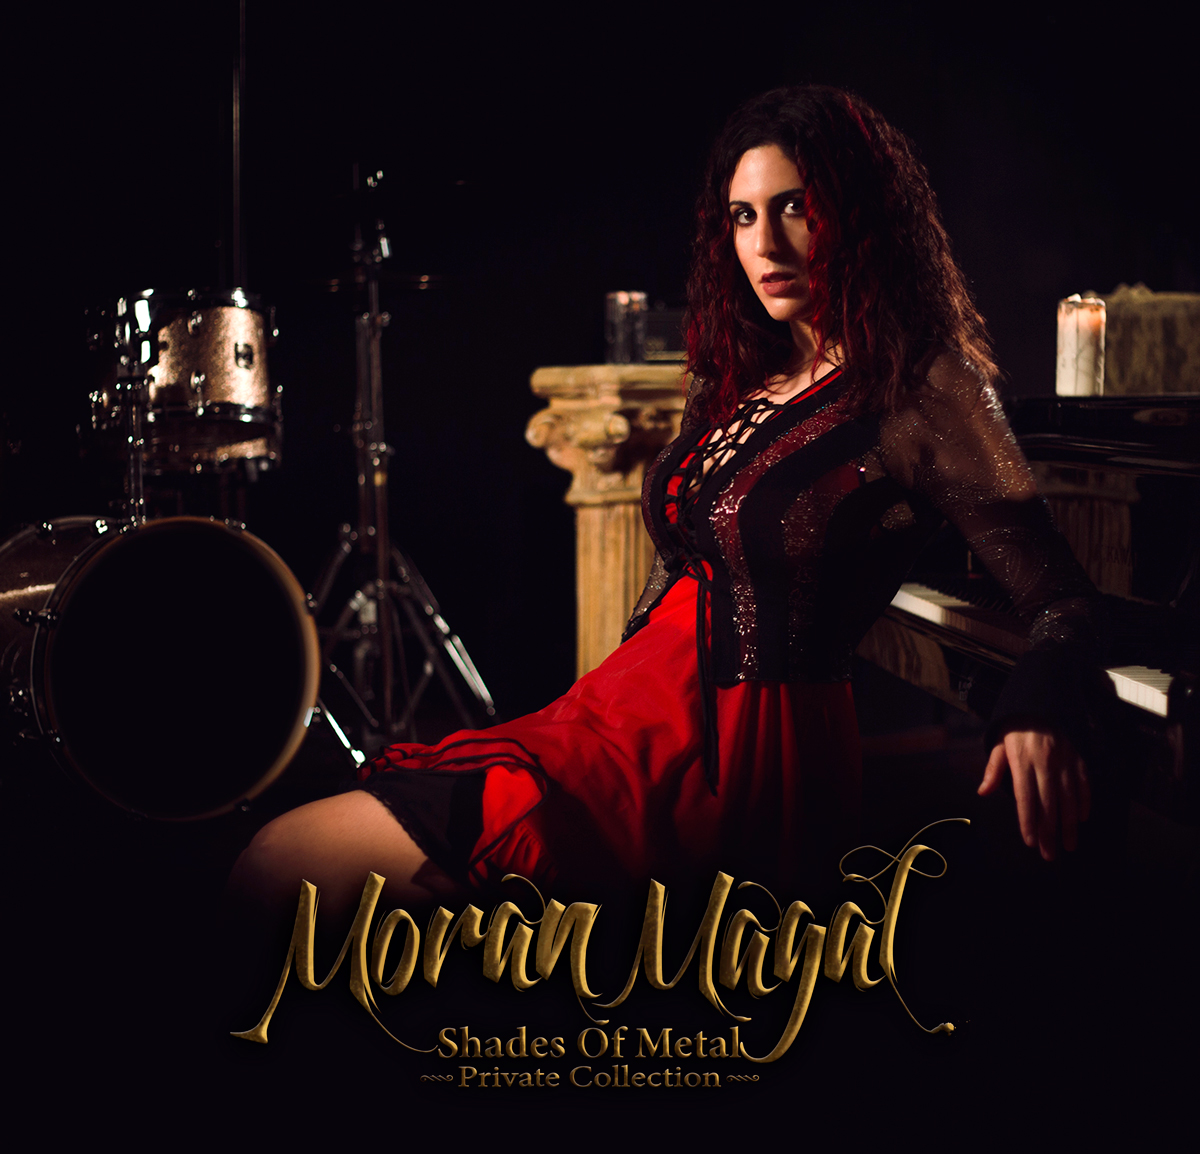 Moran Magal,Shades of Metal, FBP Music Publishing